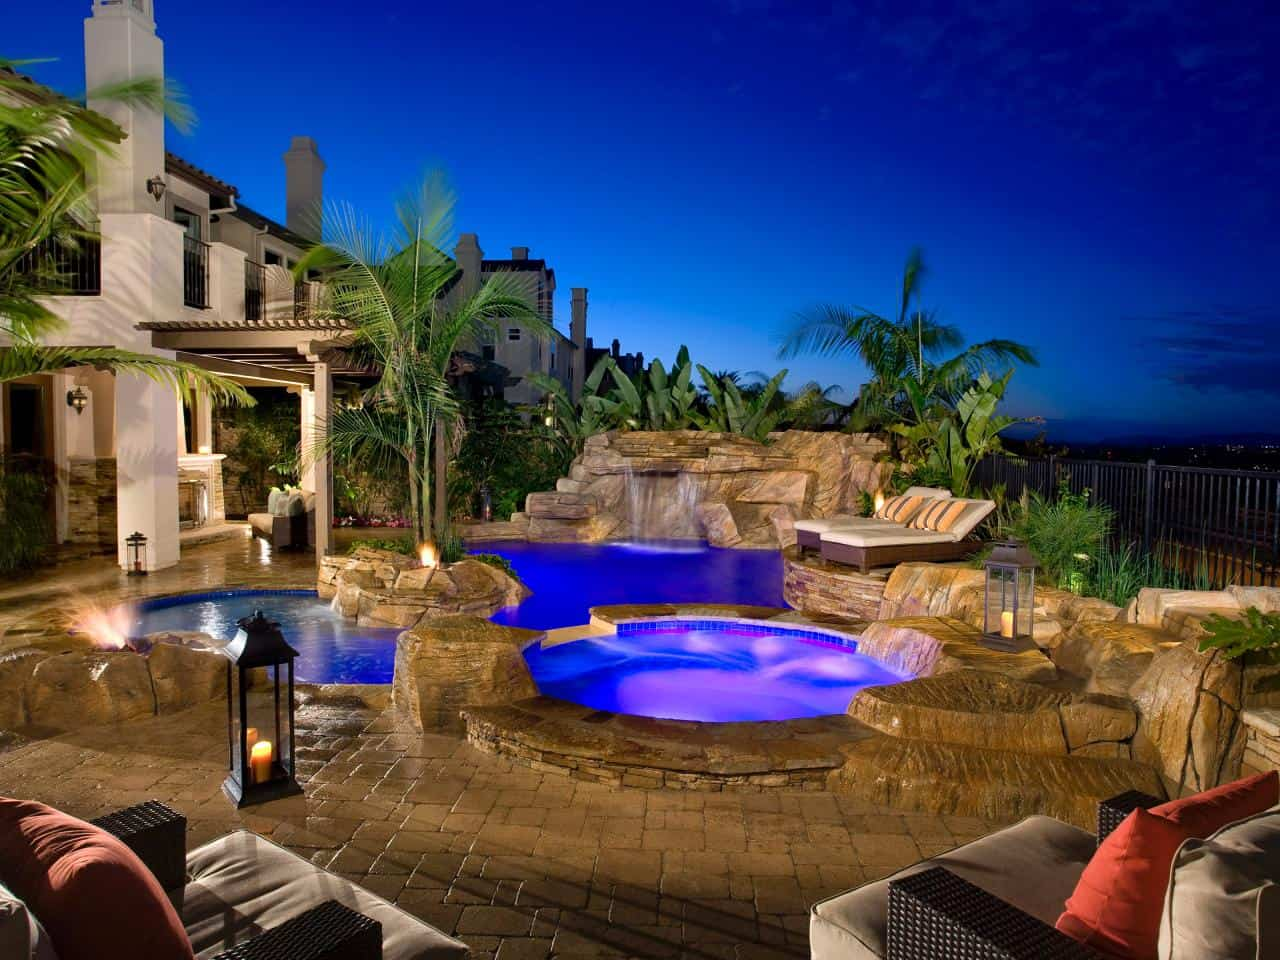 Jacuzzi Oval Pool Swimming Pool Trends For The Ultimate Staycation Right At Home